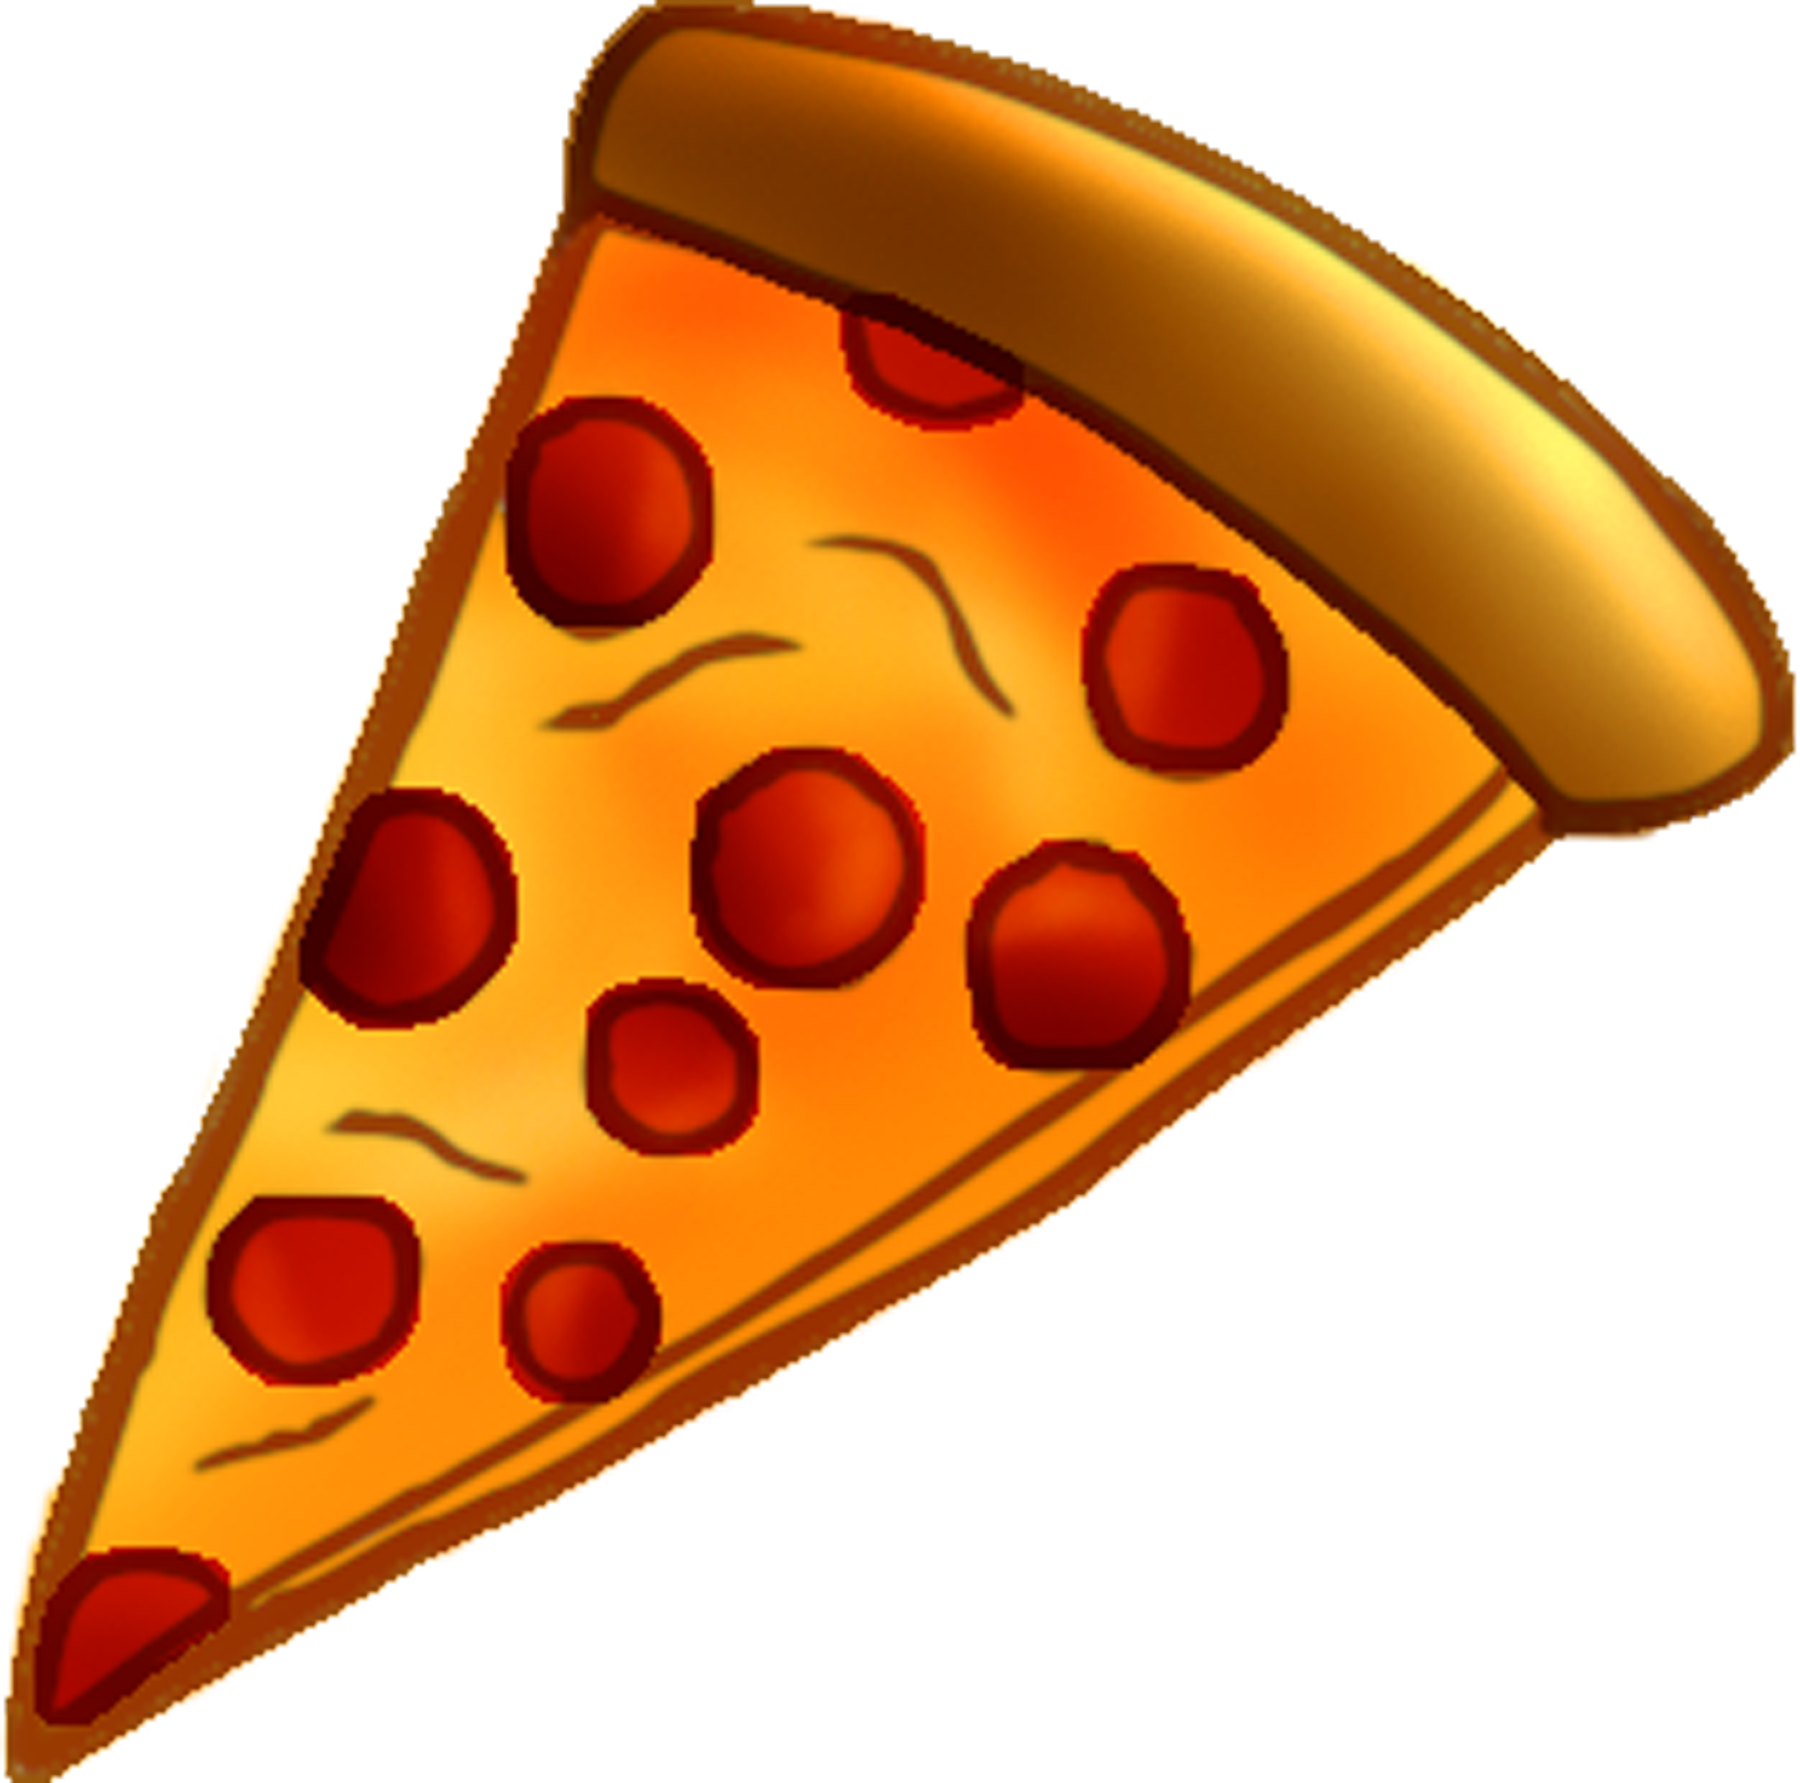 Pizza slice clipart . Pepperoni transparent one jpg black and white